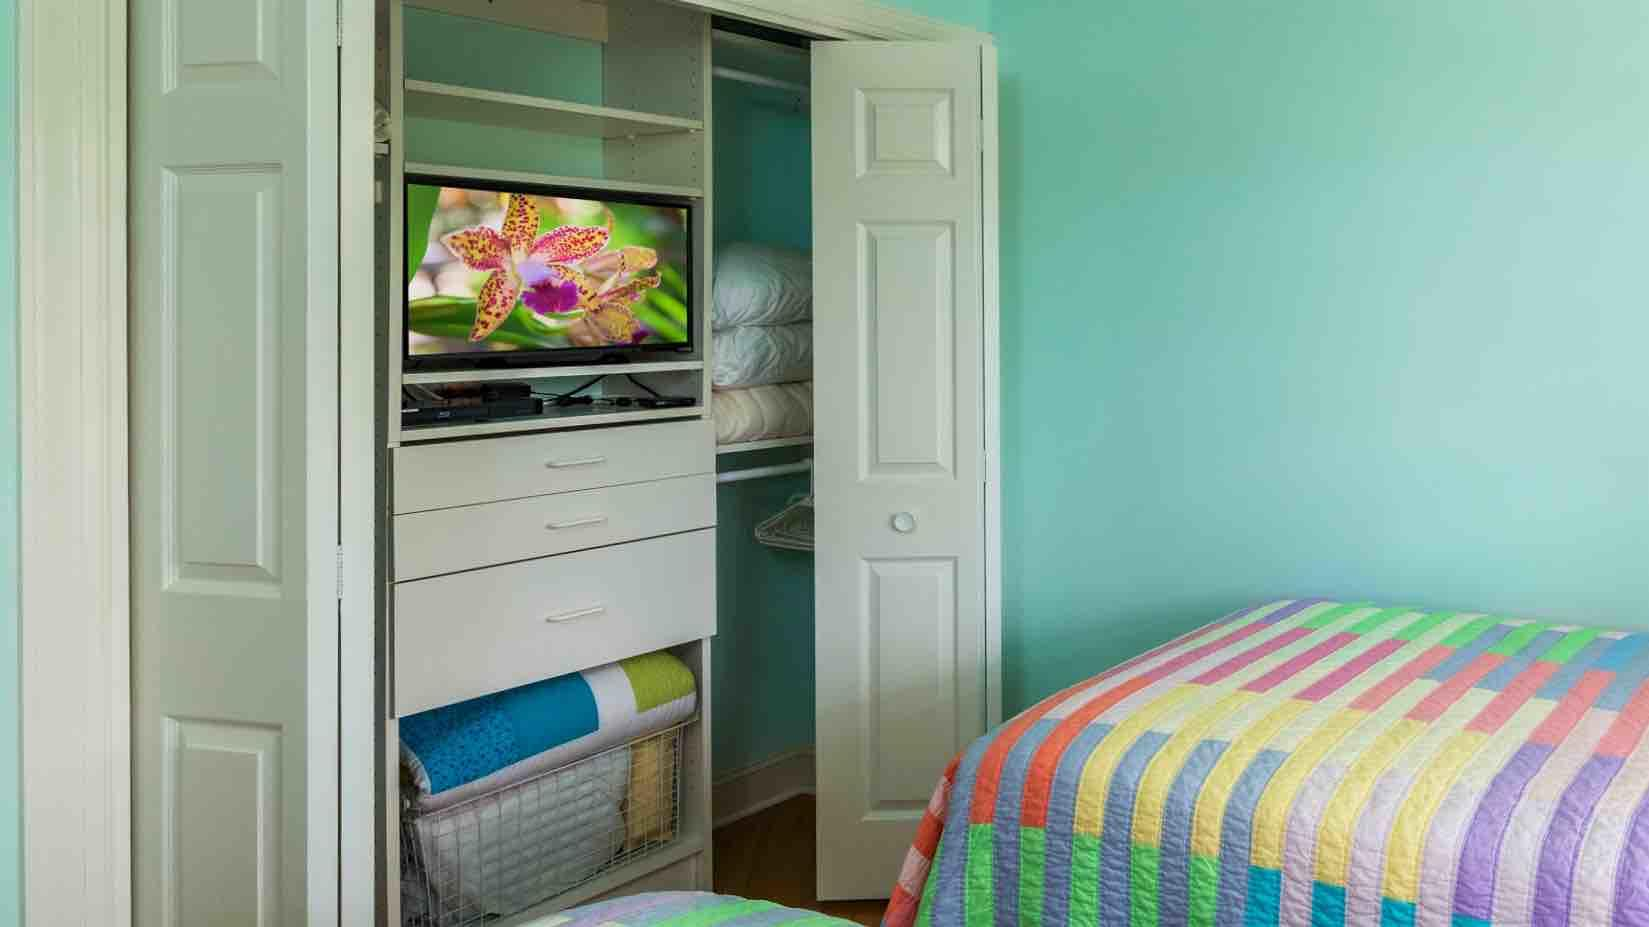 The second bedroom also has a flat screen TV...